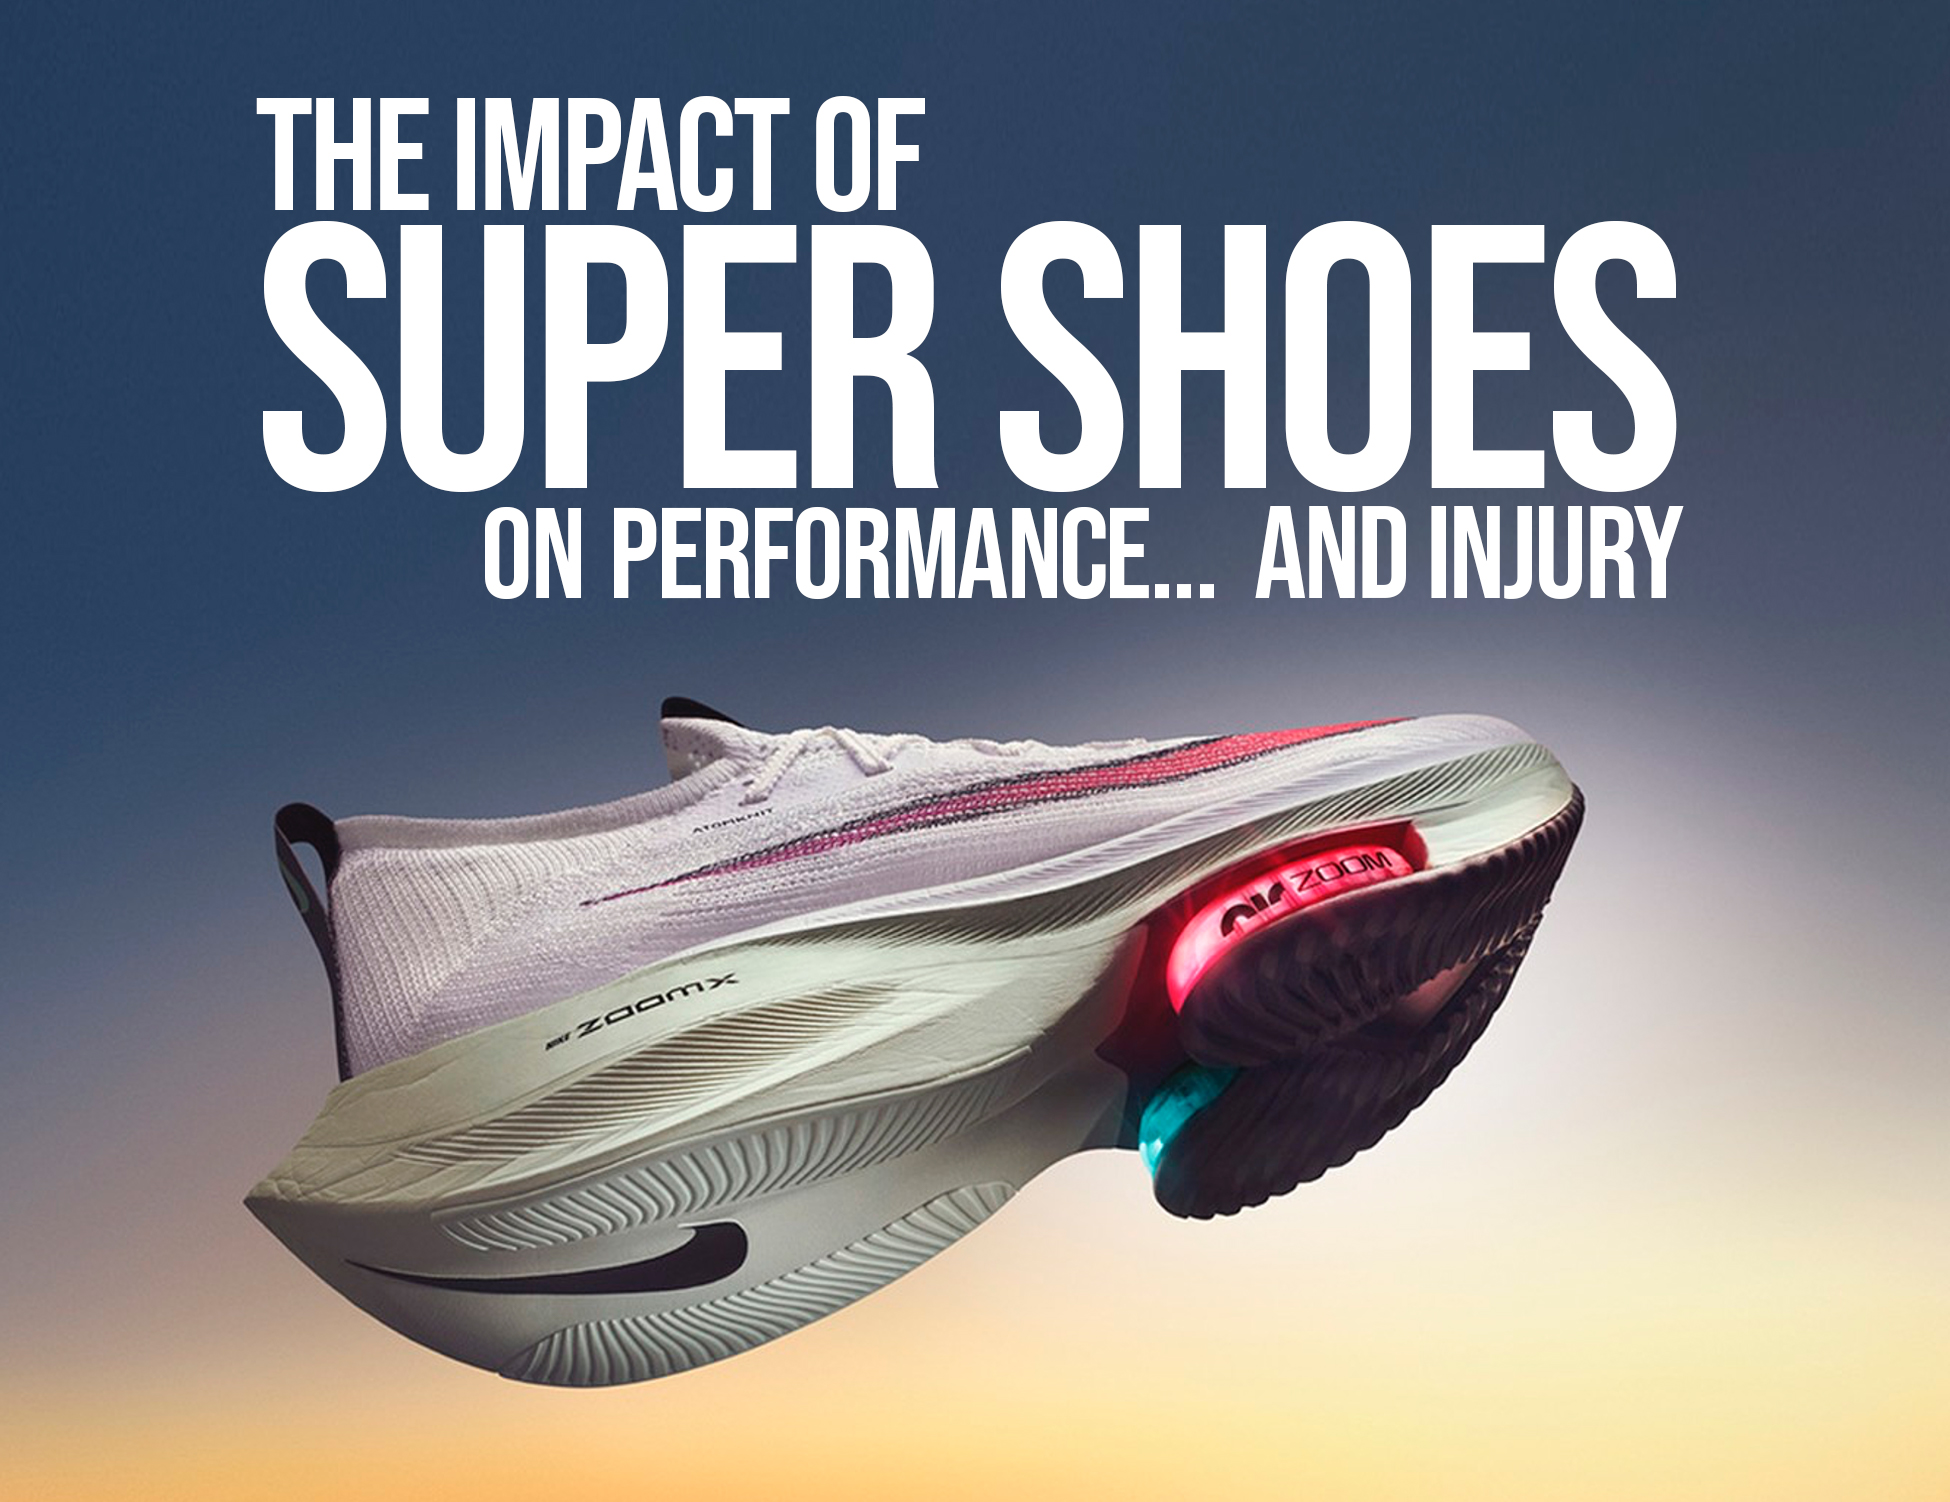 LIVE WEBINAR: The impact of Super shoes on Performance... and Injury